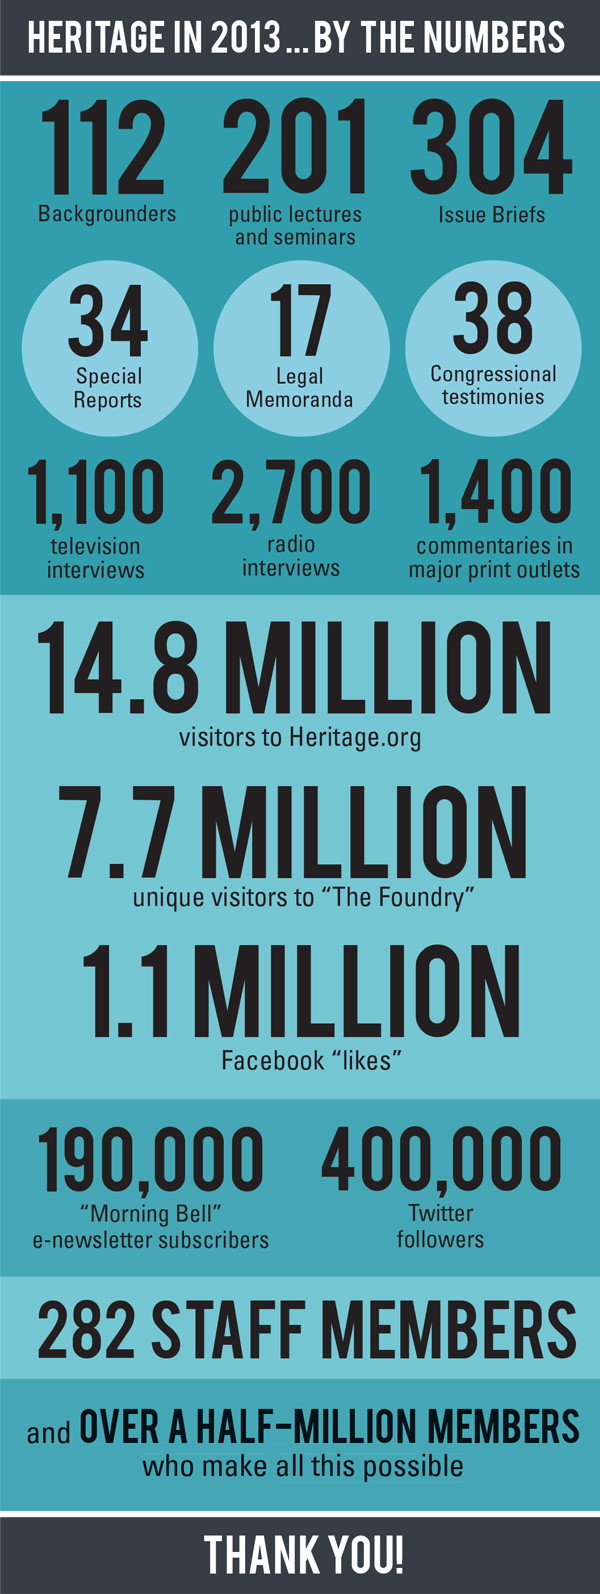 Heritage in 2013 by the Numbers